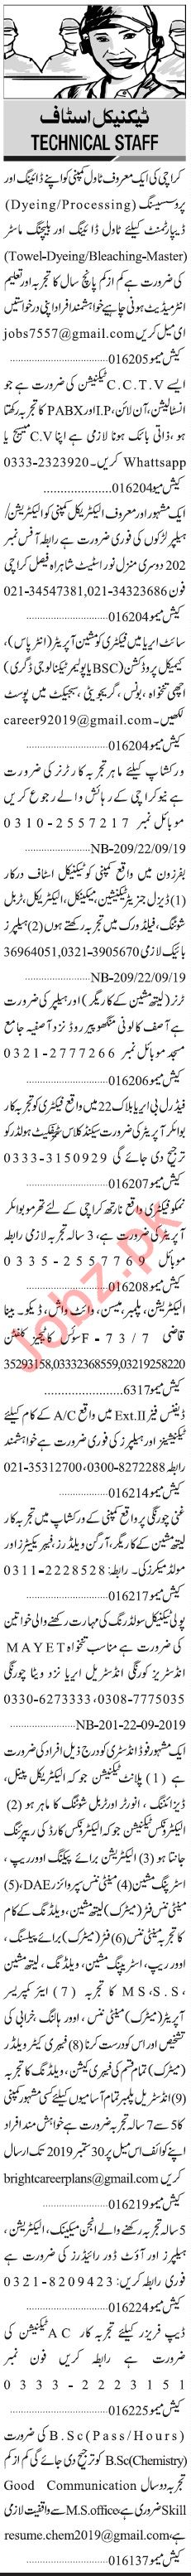 Jang Sunday Classified Ads 22nd Sep 2019 for Technical Staff